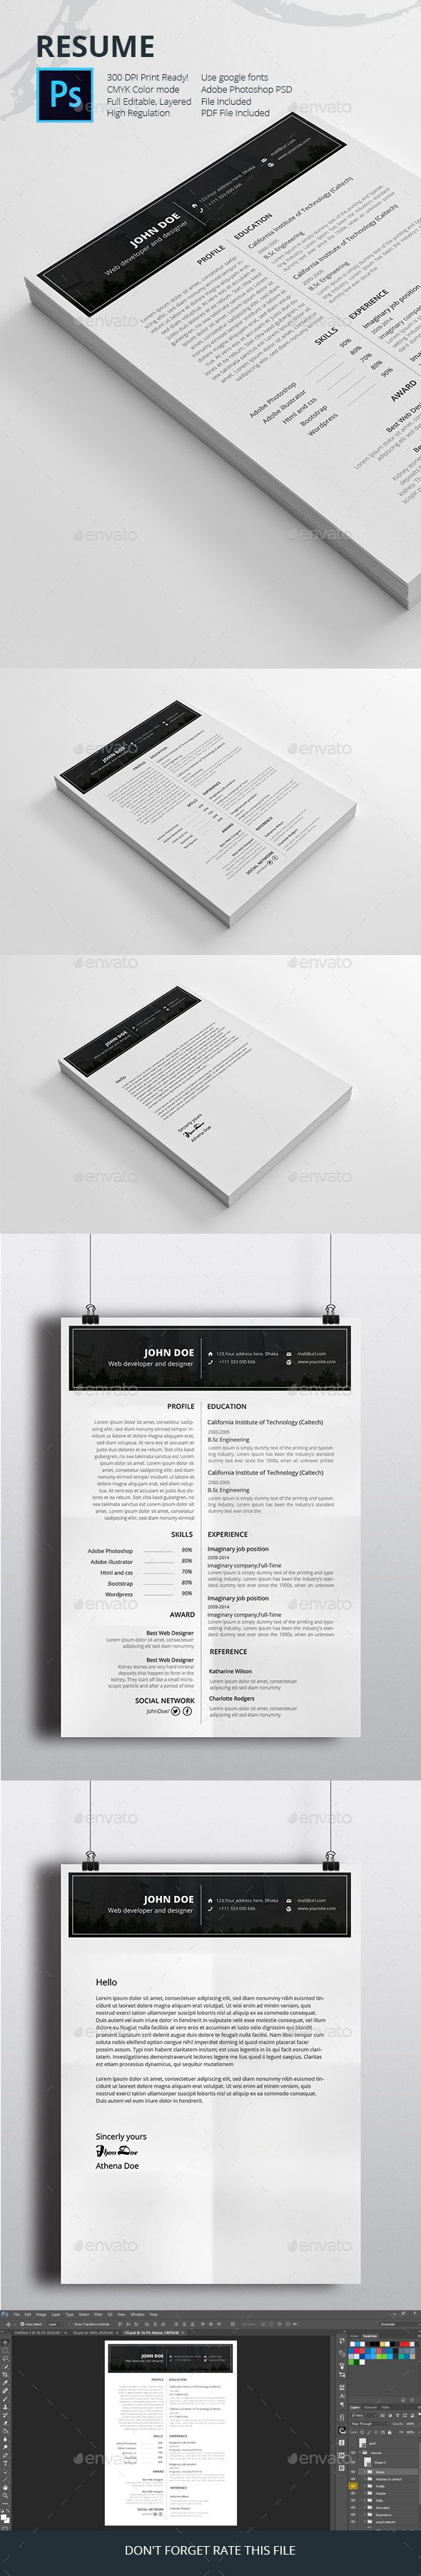 Job resume templates by graphicalark Professionally designed